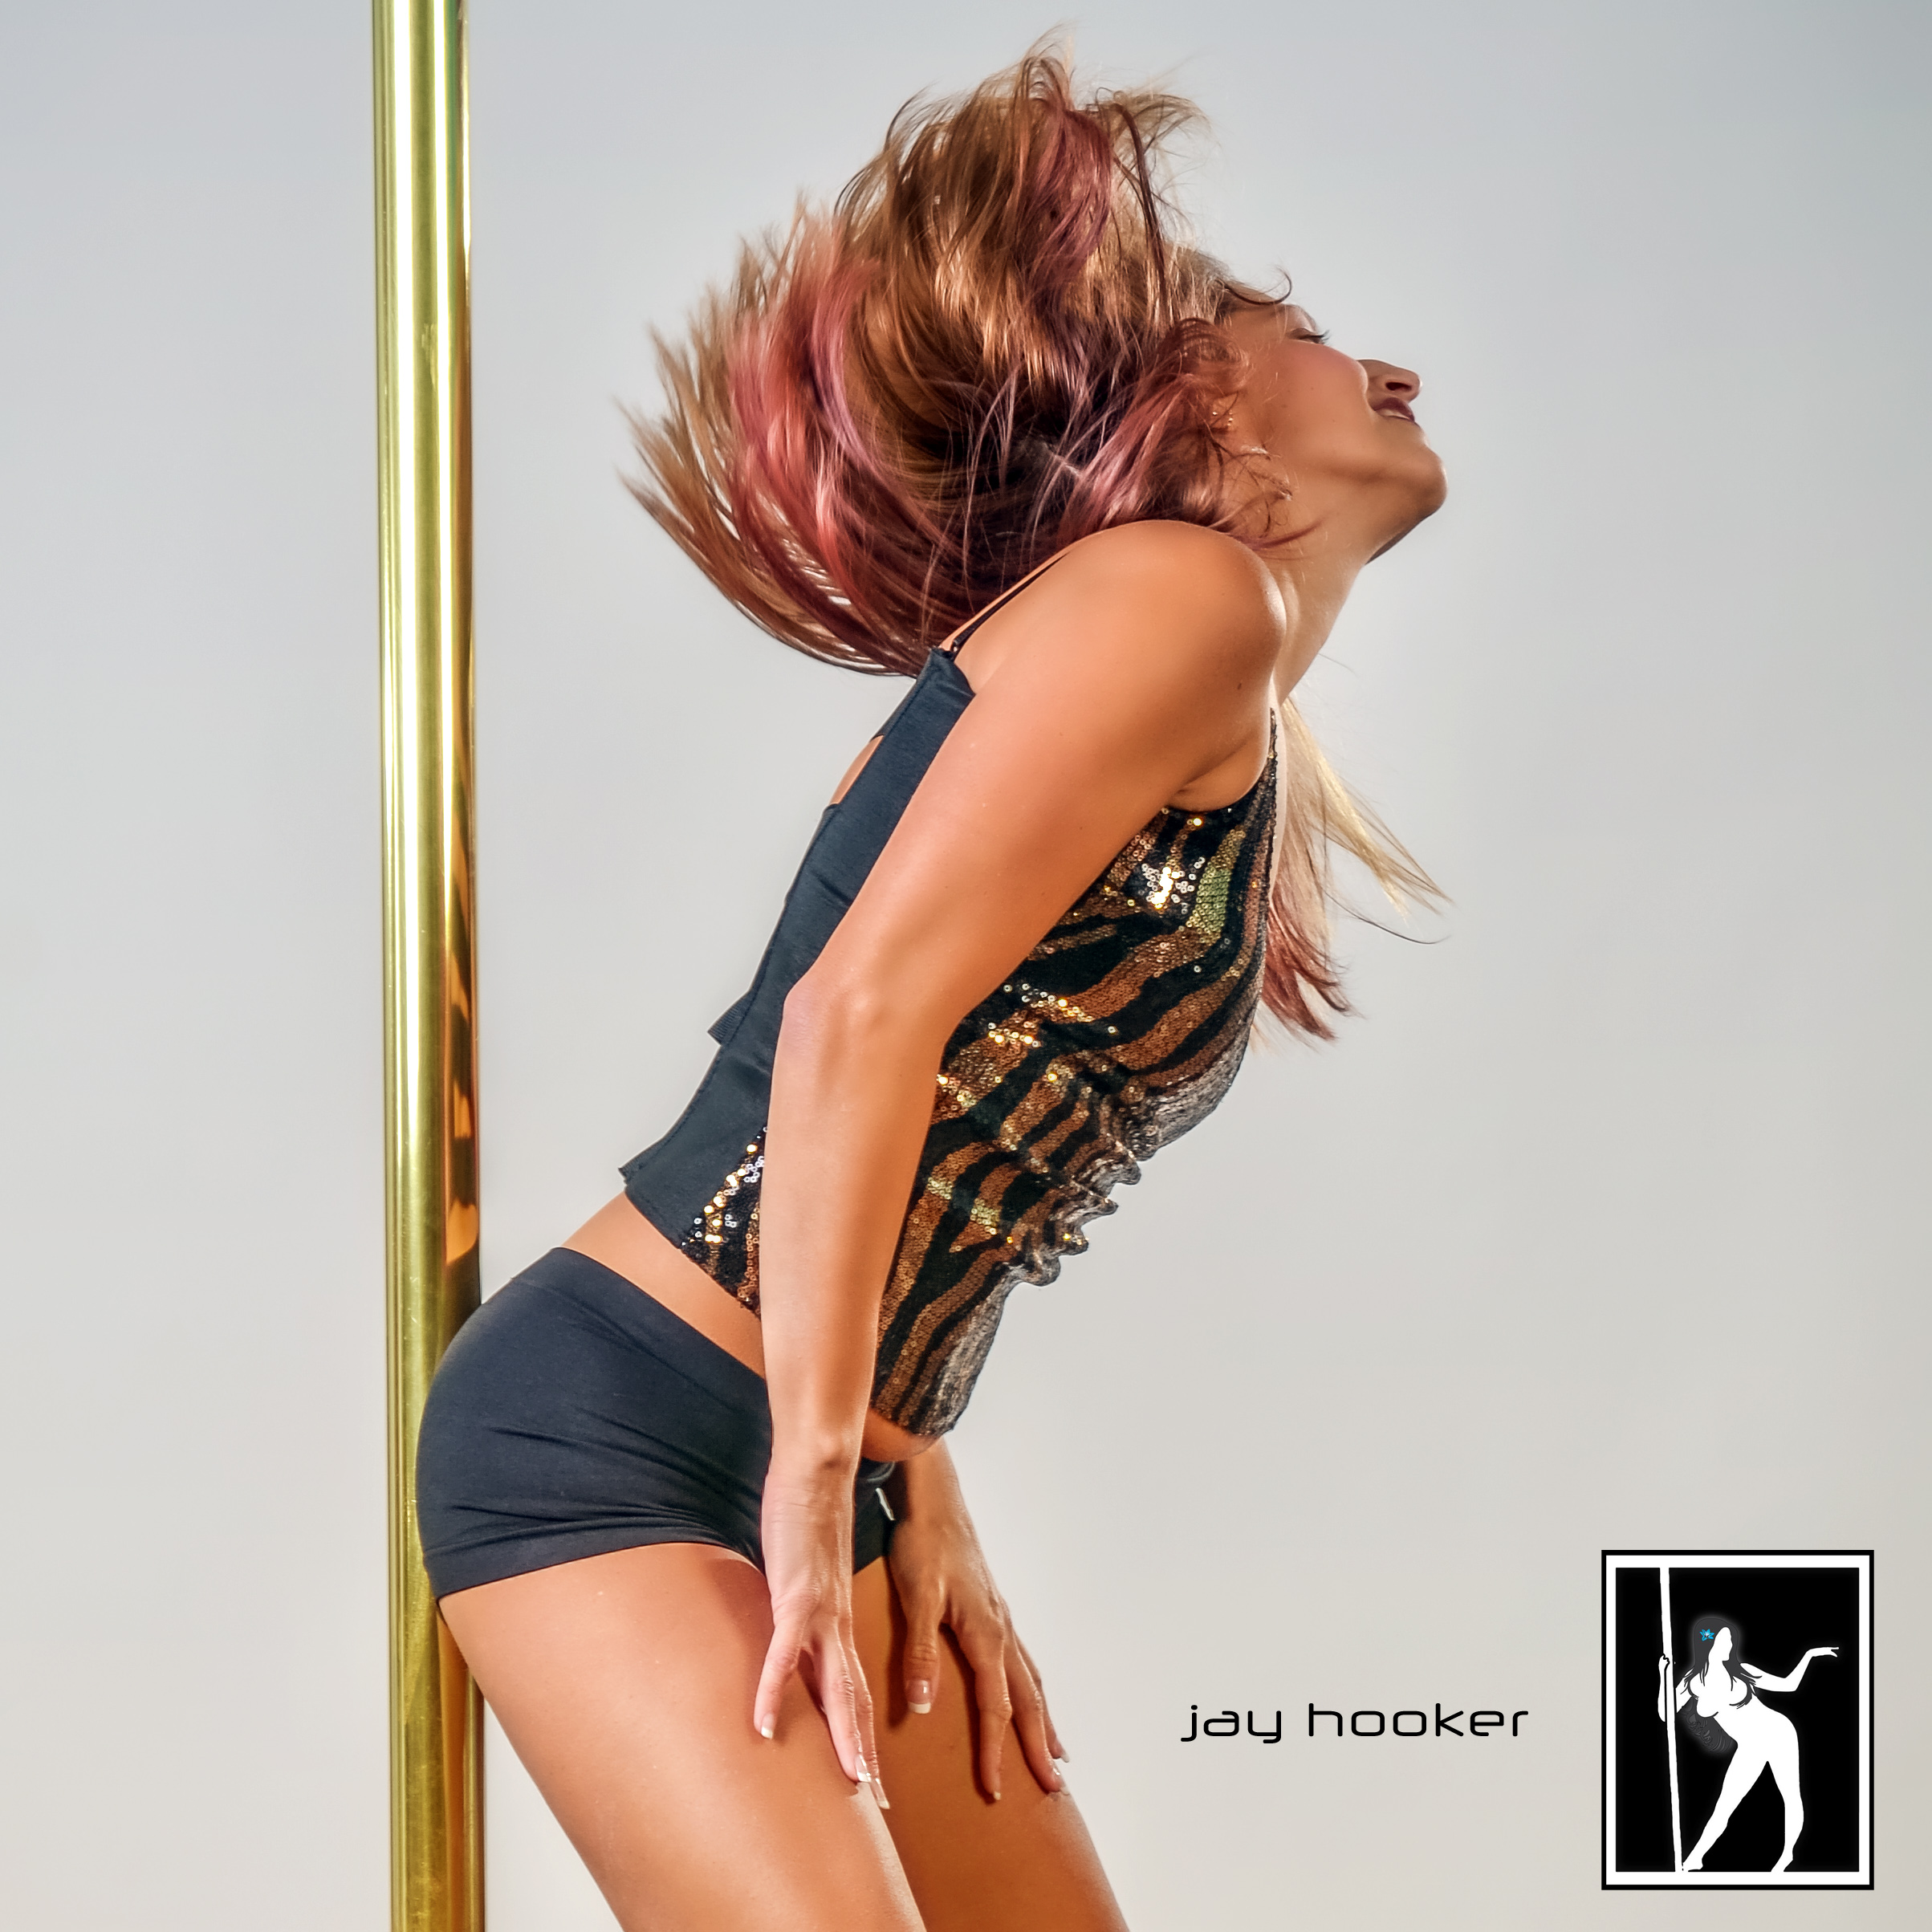 Pole Dancing Classes Charleston, SC